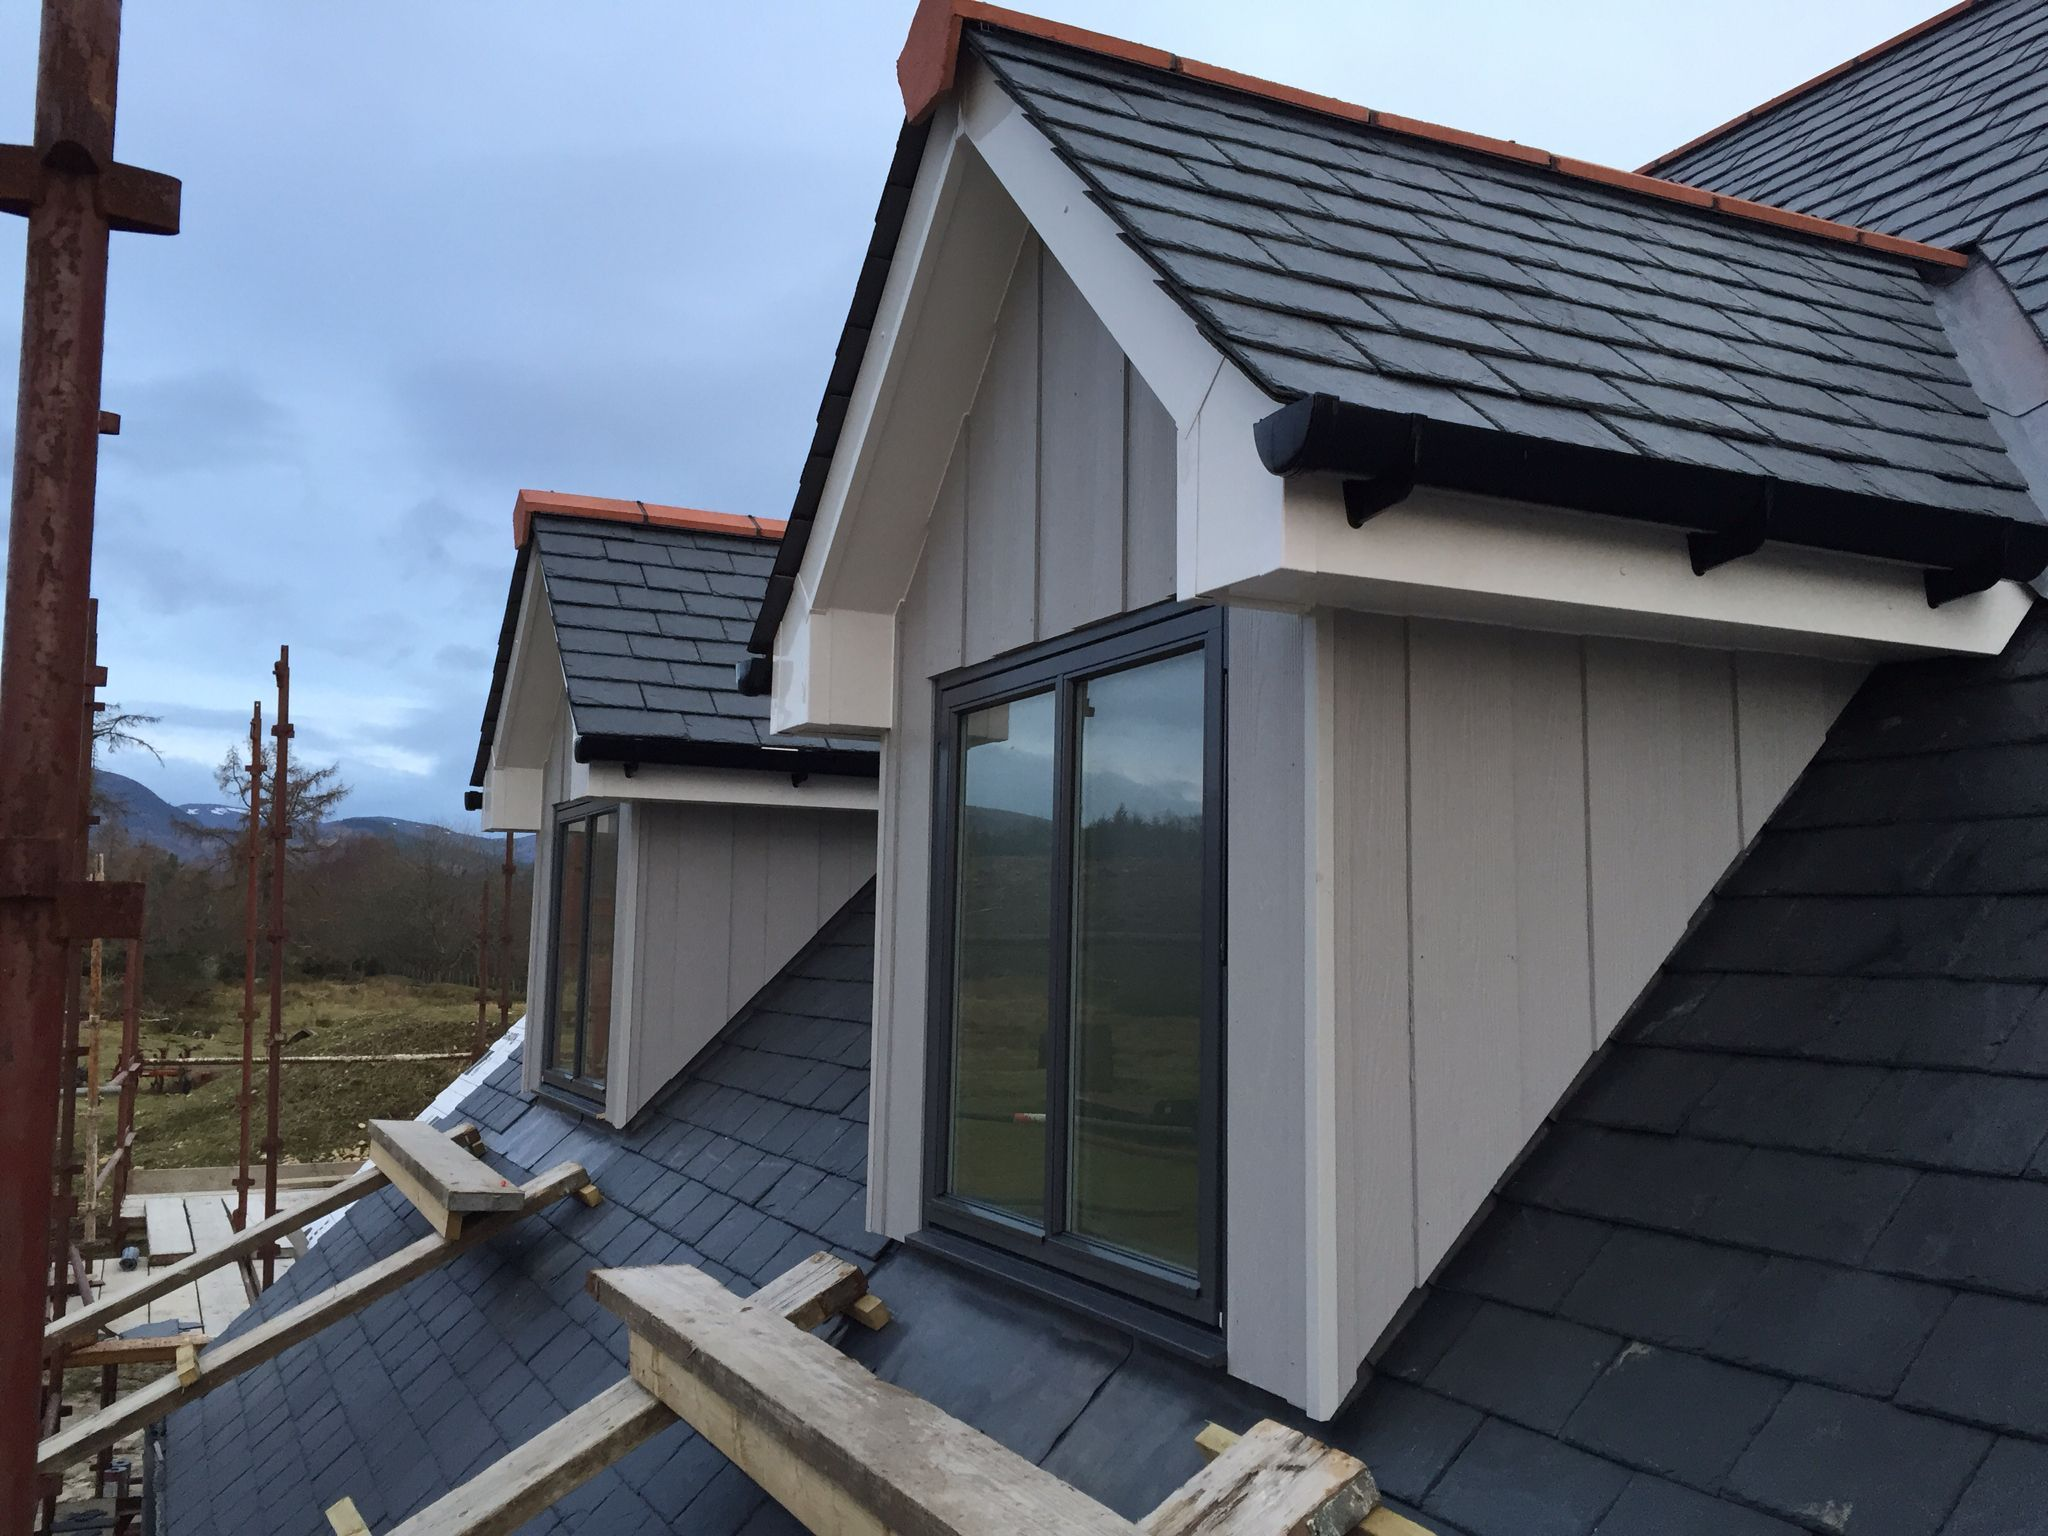 Dormer window ideas  vertical cedral weatherboard used on dormer windows next to natural